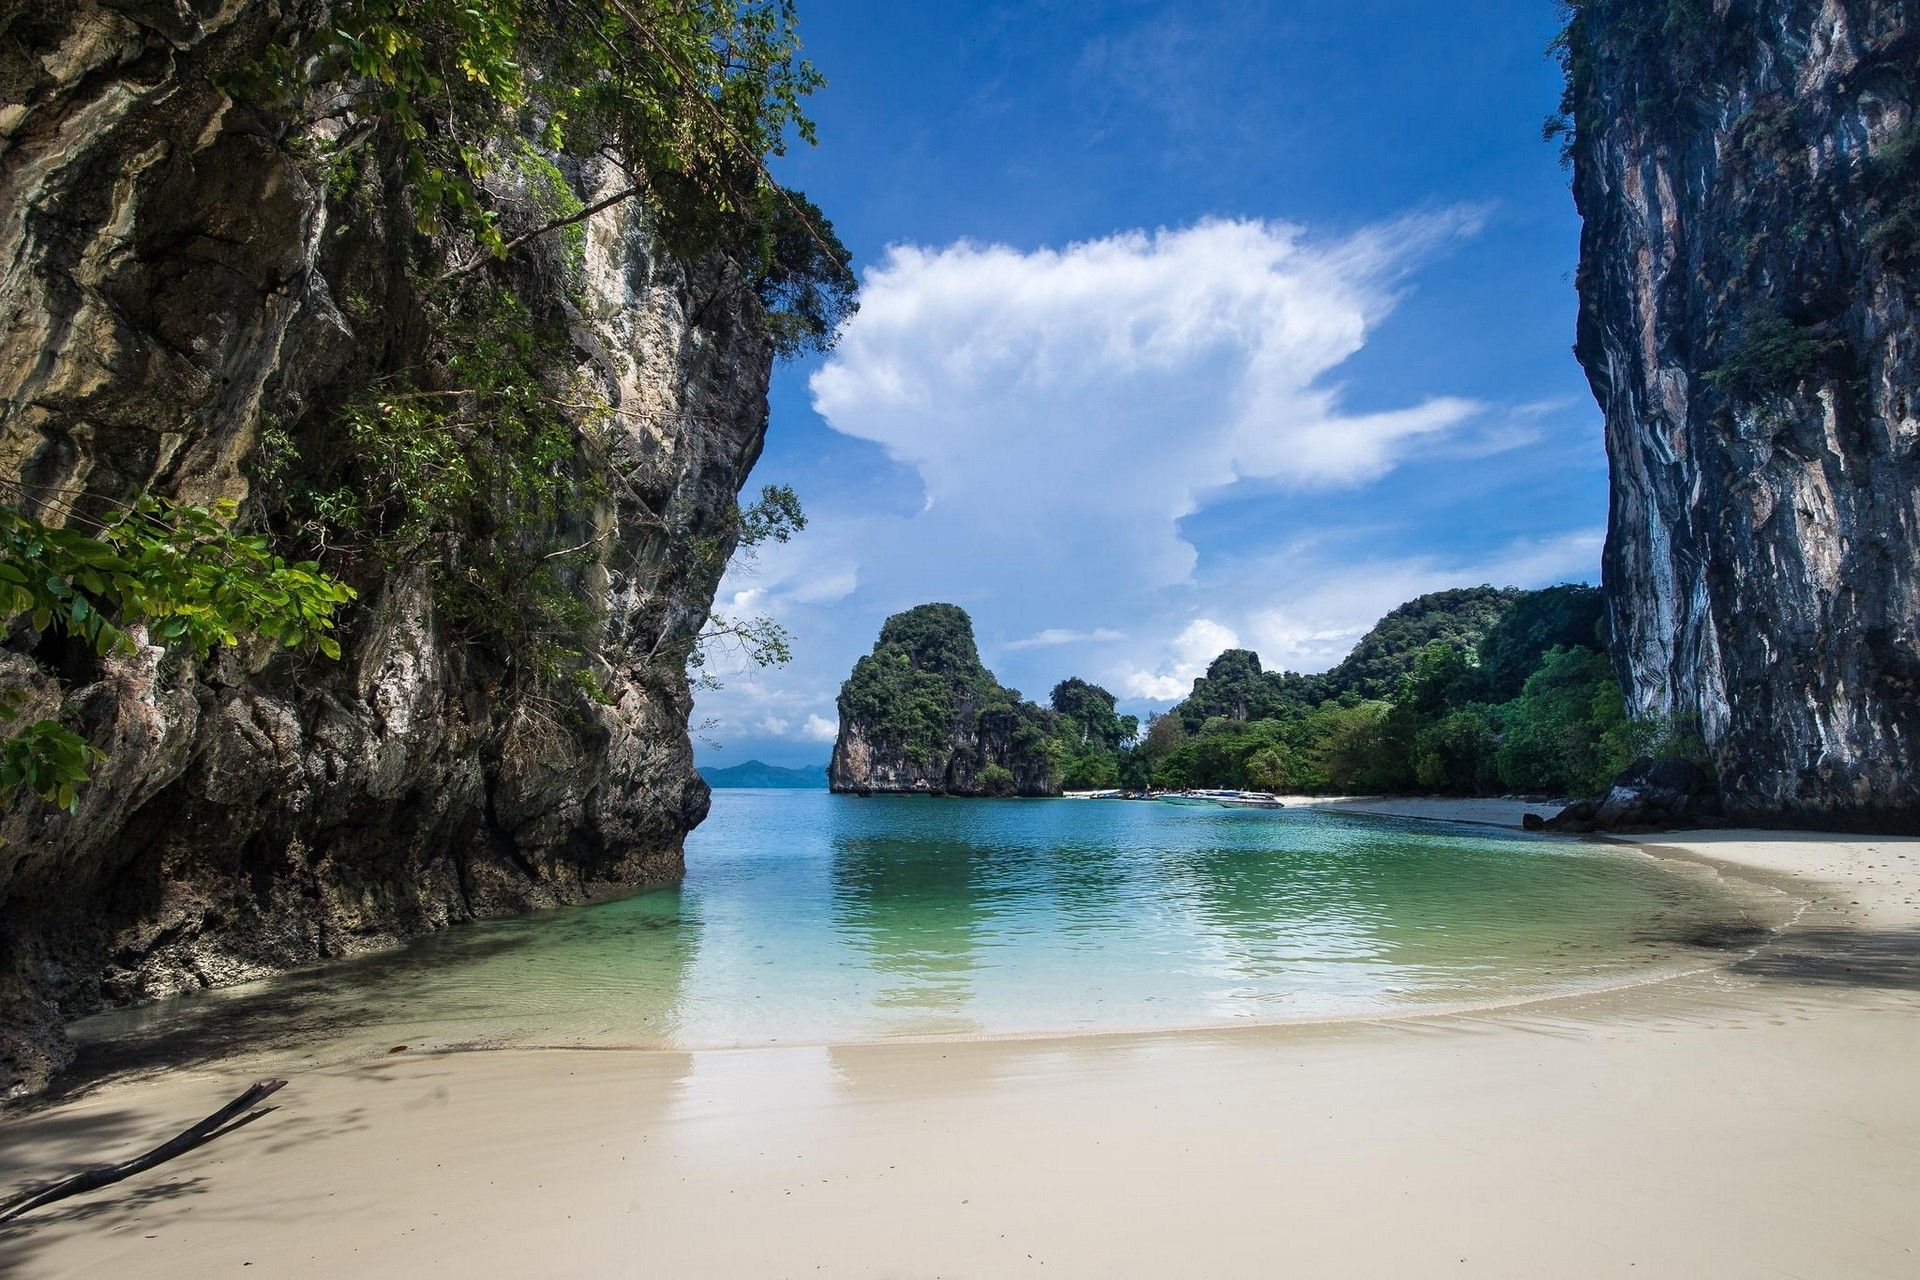 Landscape Nature White Sand Beach Rock Cliff Sea Boat Island Tropical Eden Thailand Wallpapers Hd Desktop And Mobile Backgrounds Dream Beach Beautiful Places Places To See